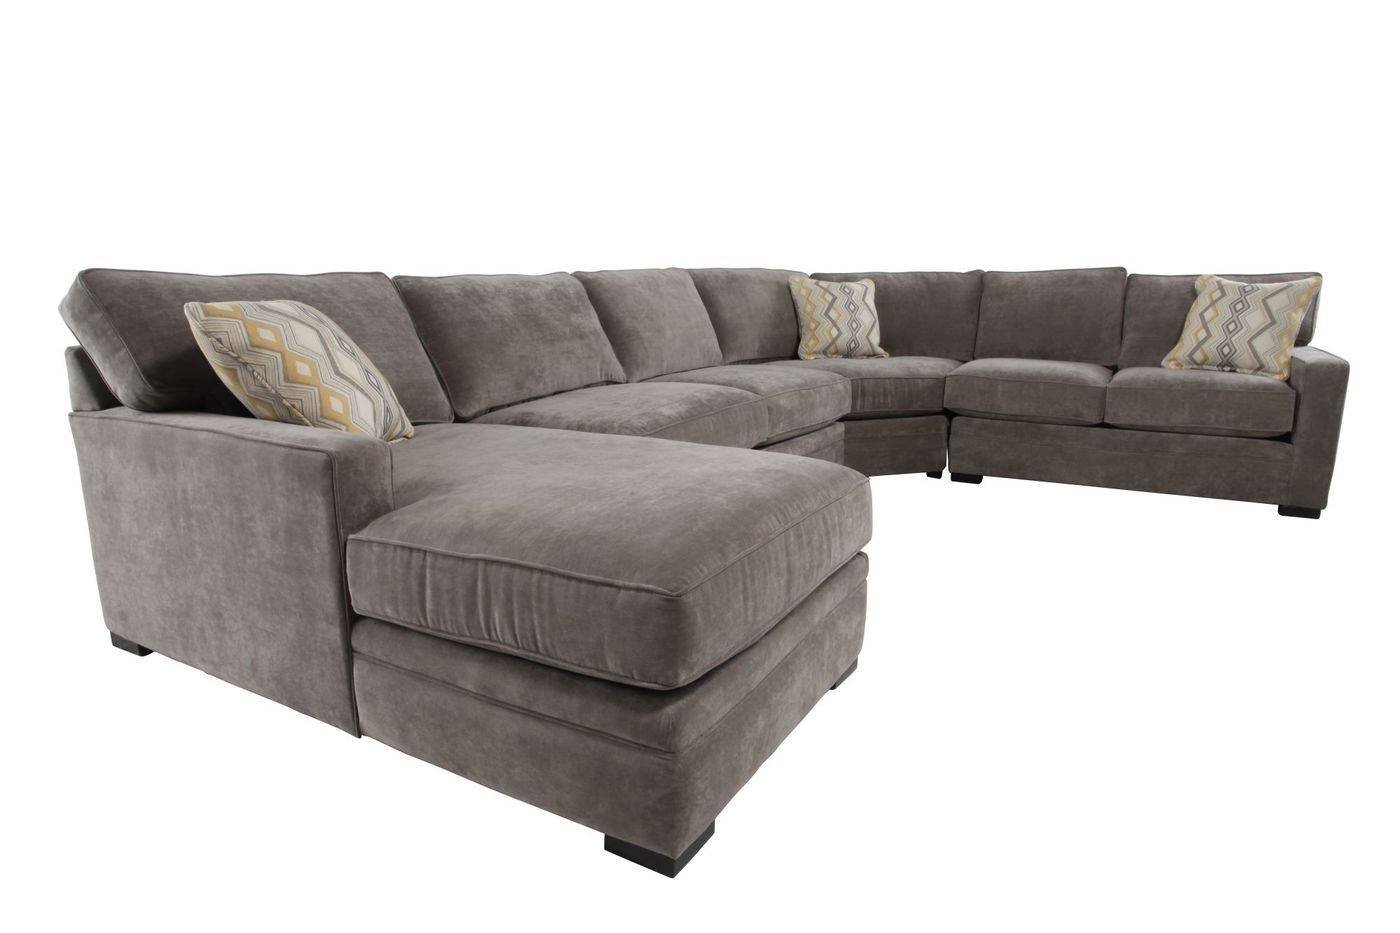 Beautiful Jonathan Louis Sectional Sofa 52 With Additional With Regard To Jcpenney Sectional Sofas (View 13 of 15)